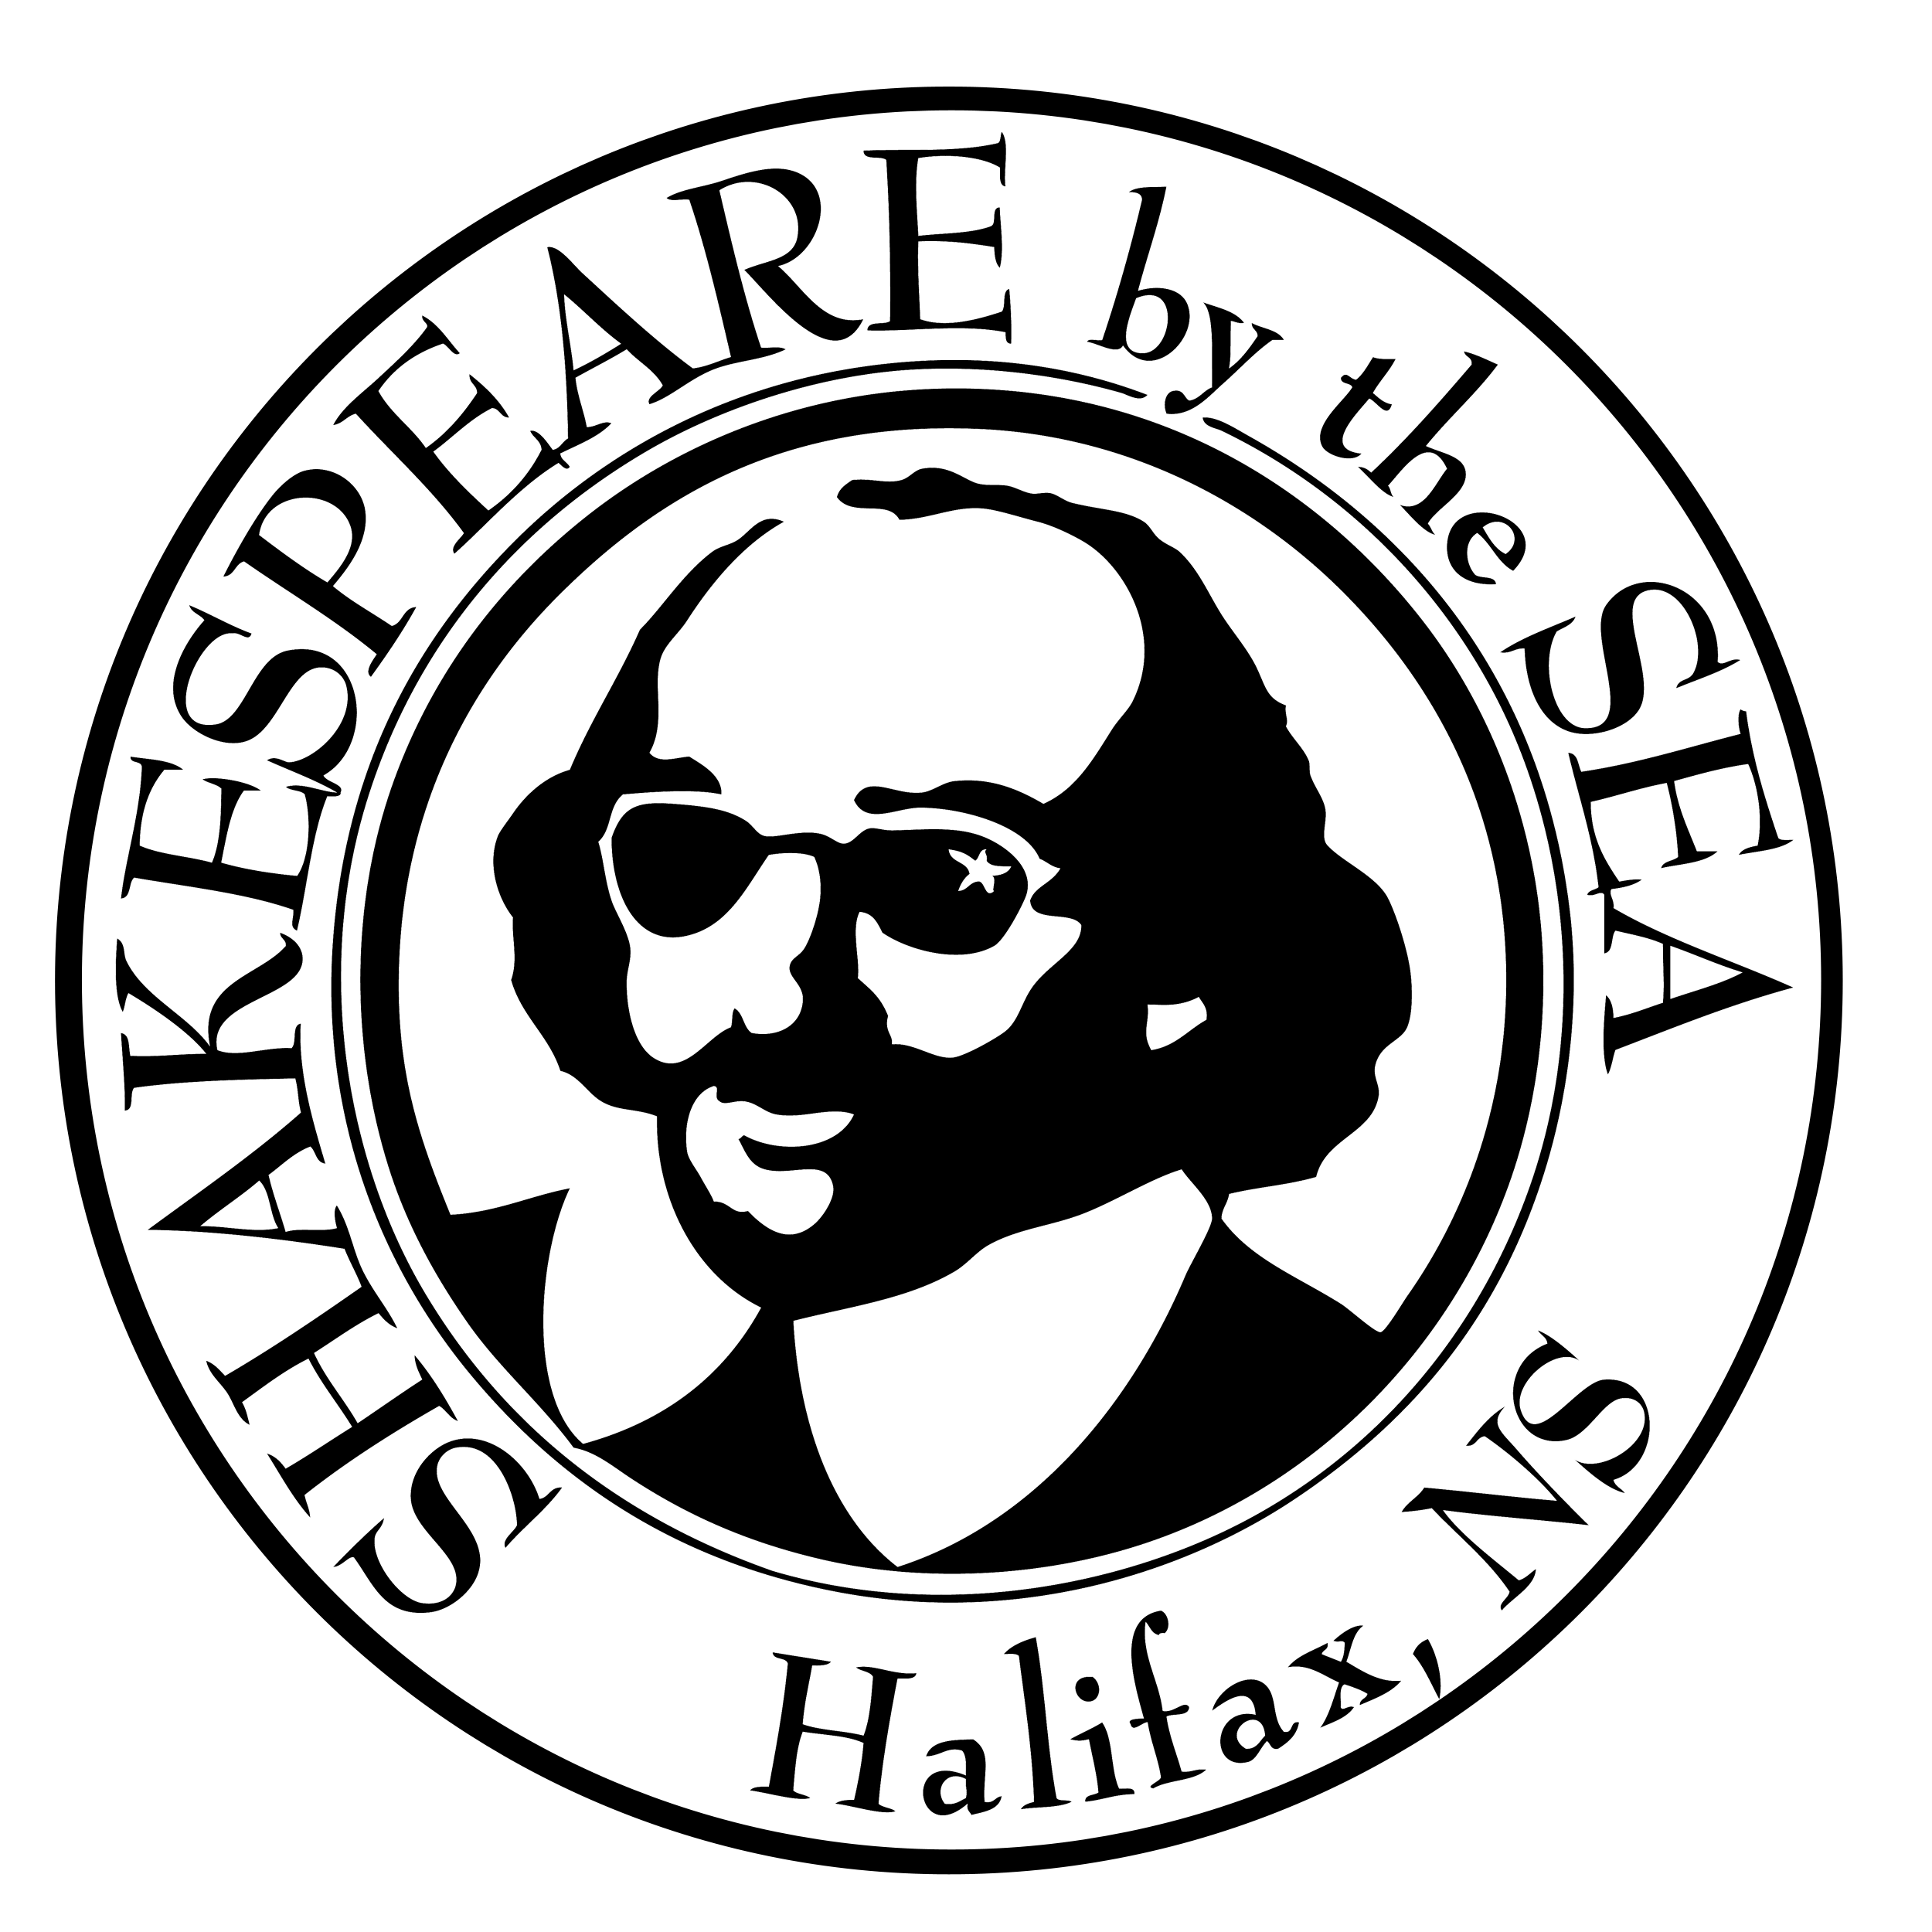 Vote drawing black tuesday. Shakespeare by the sea